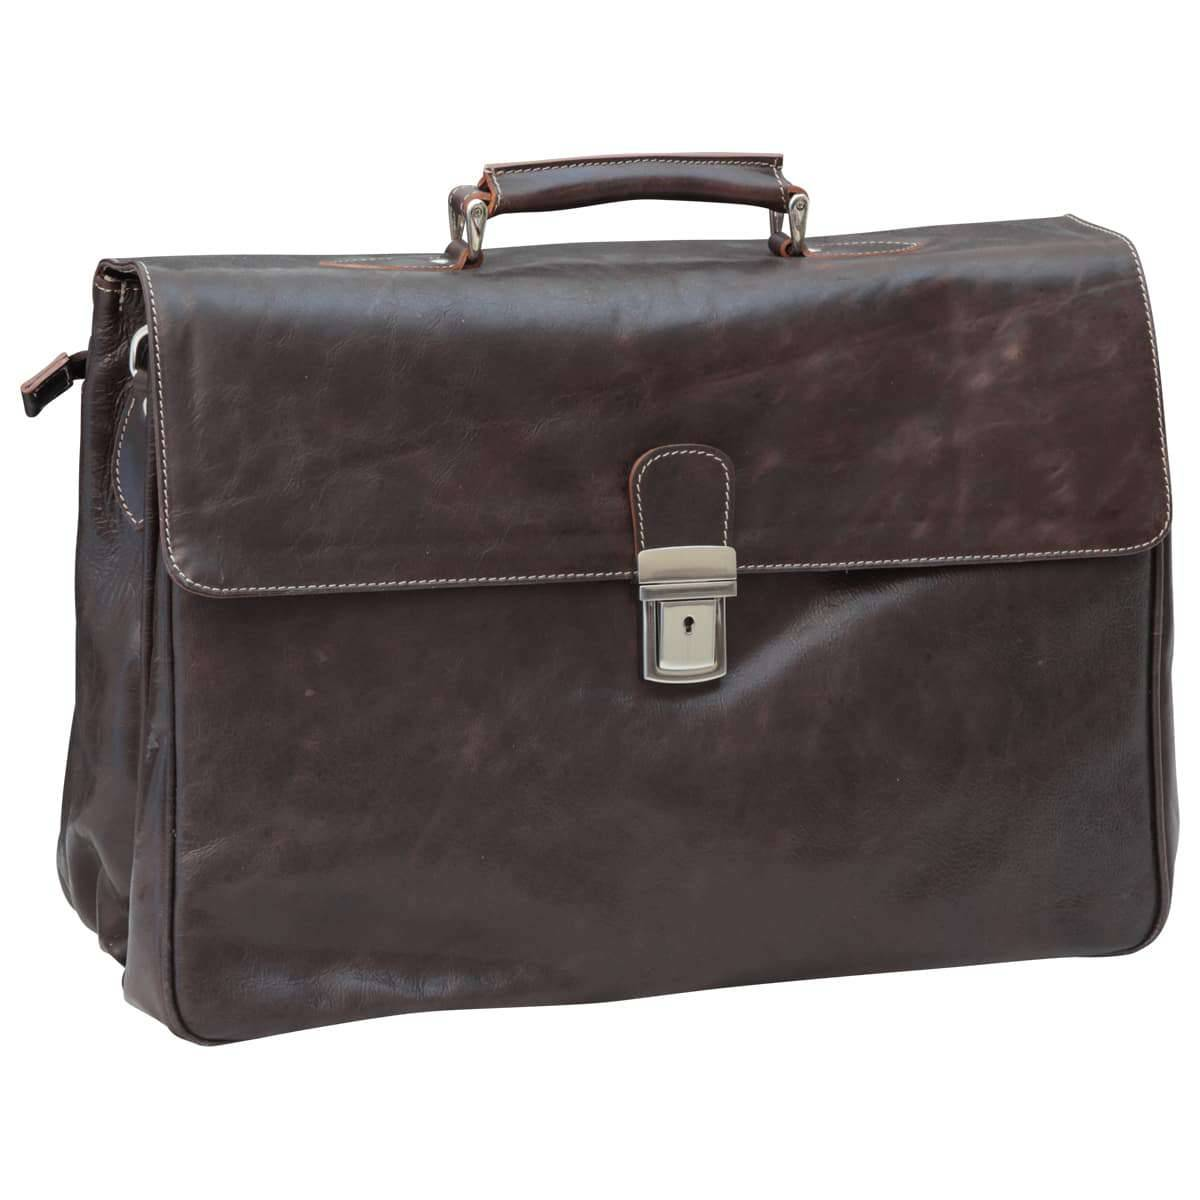 Oiled Calfskin Leather Briefcase with key closure - Dark Brown